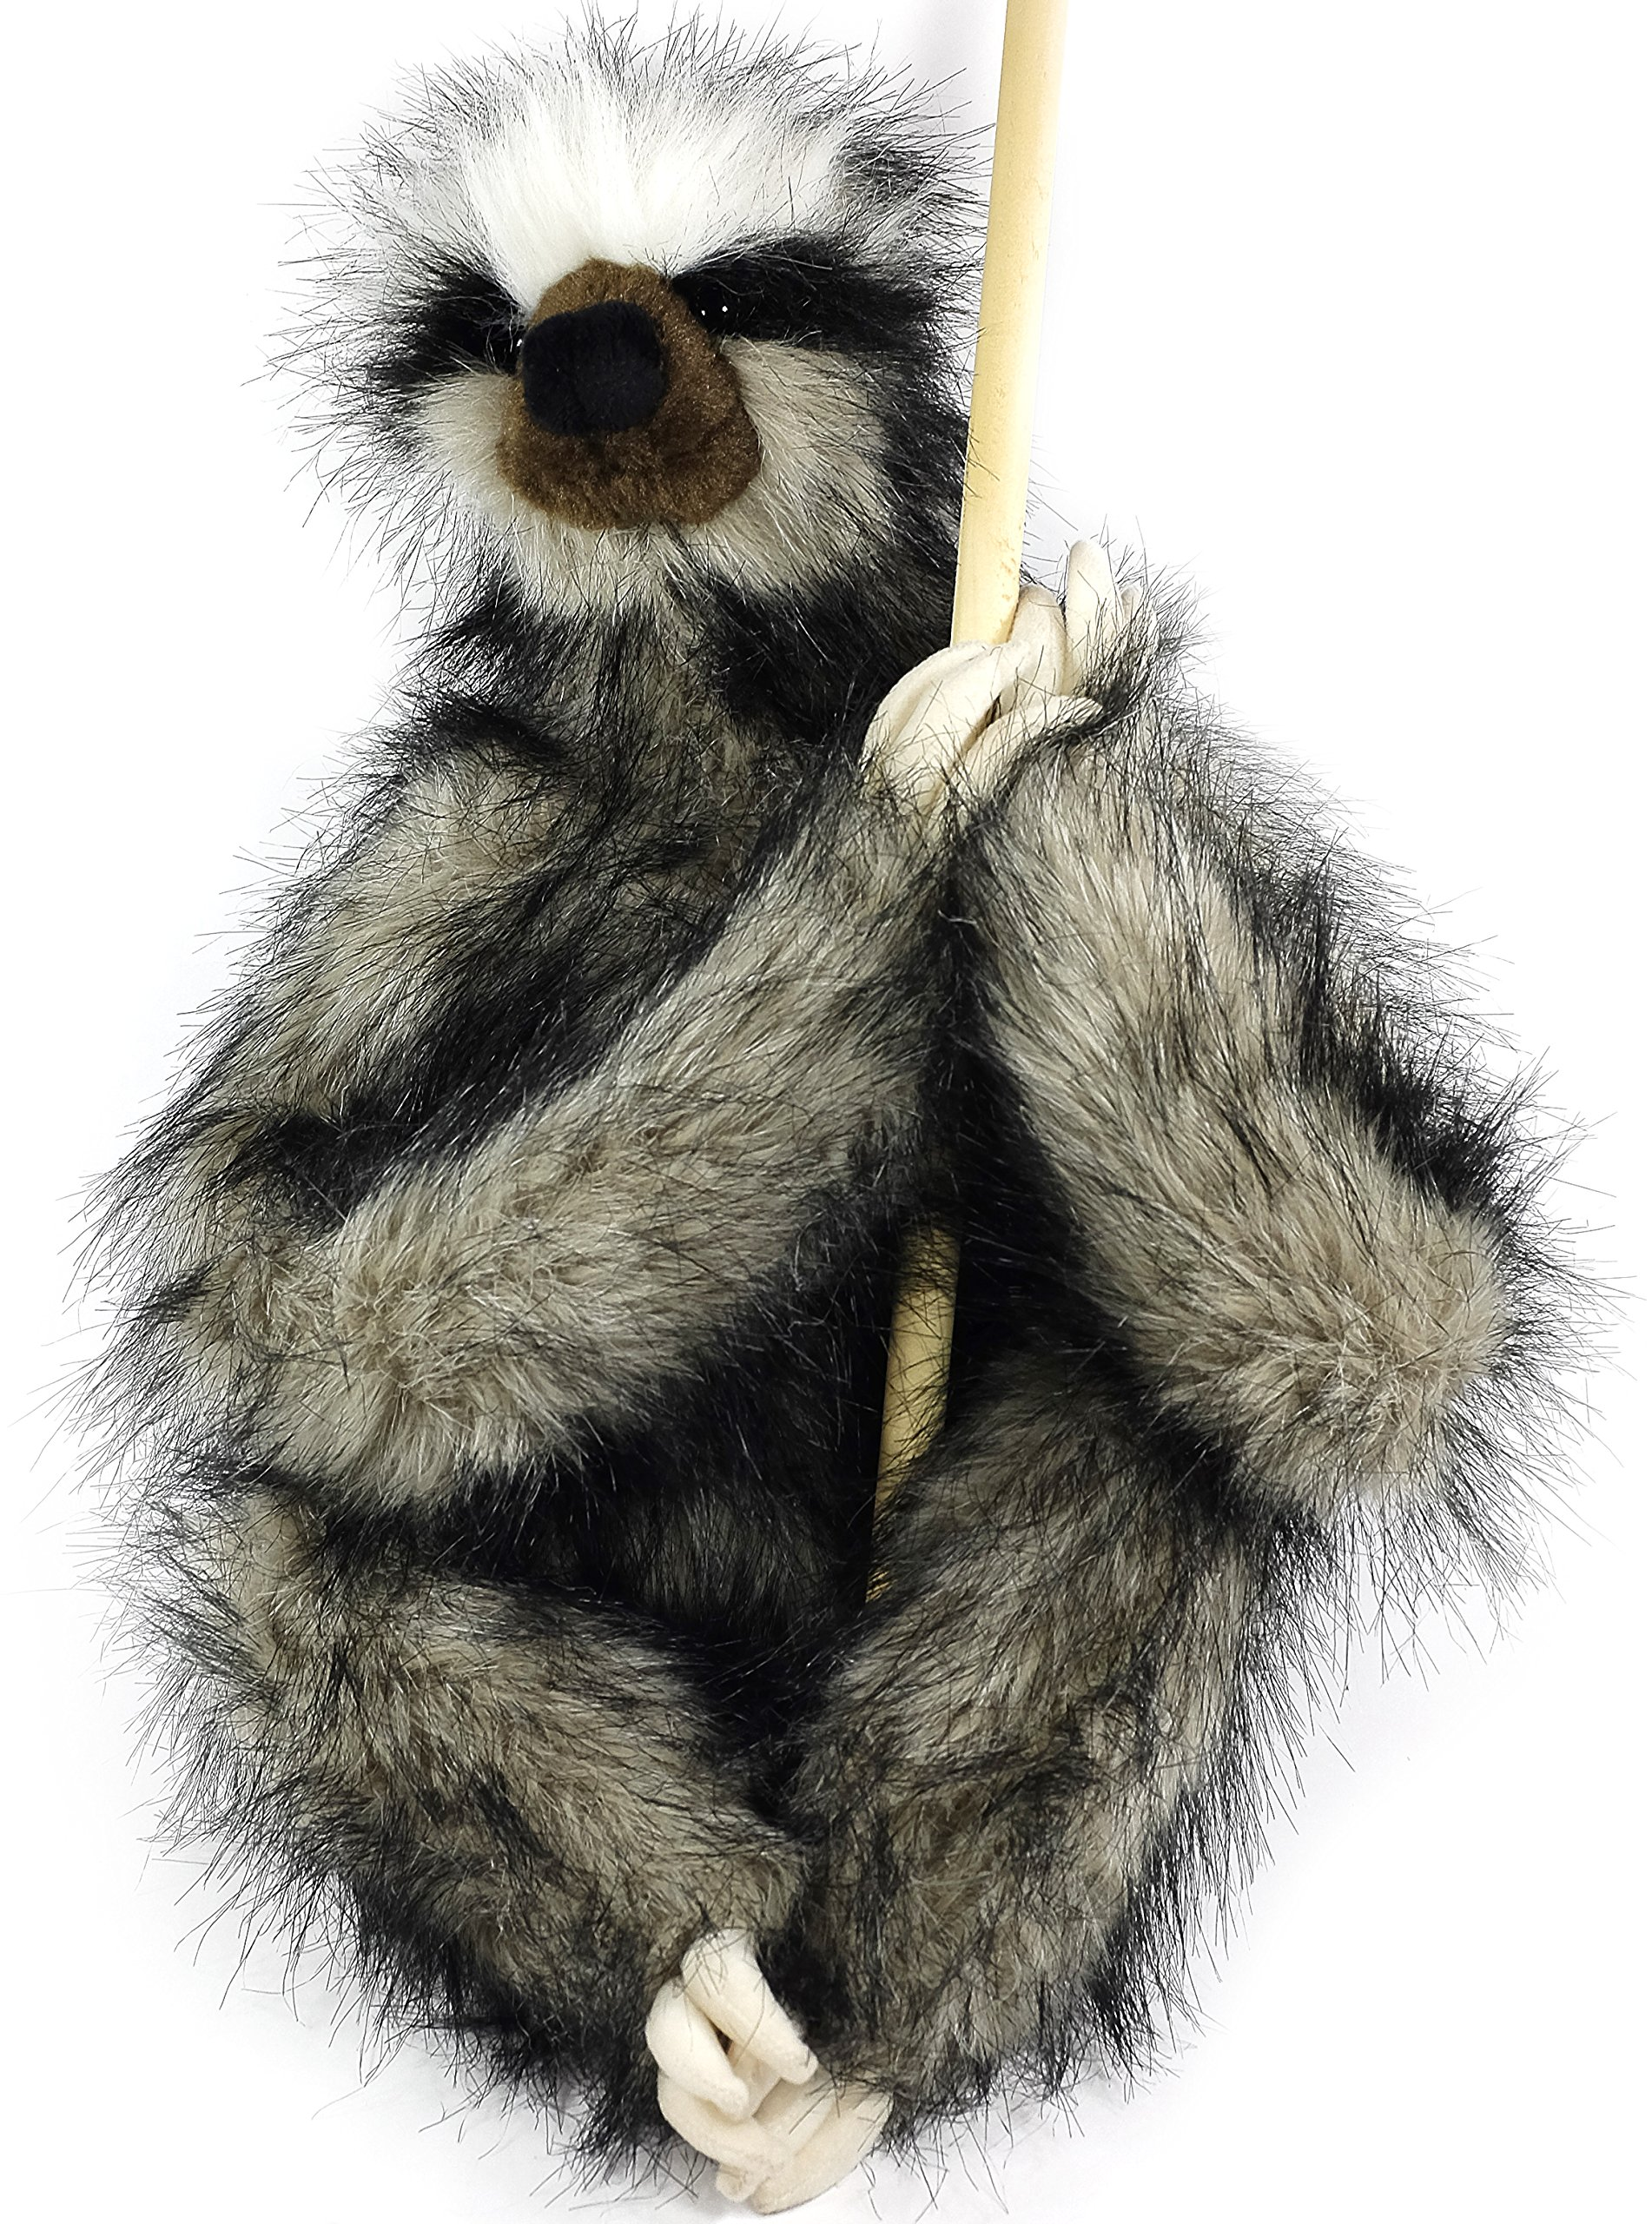 VIAHART Shlomo The Three-Toed Sloth | 18 Inch Super Realistic Large Stuffed Animal Plush Toy with Magnetic Paws | by Tiger Tale Toys by VIAHART